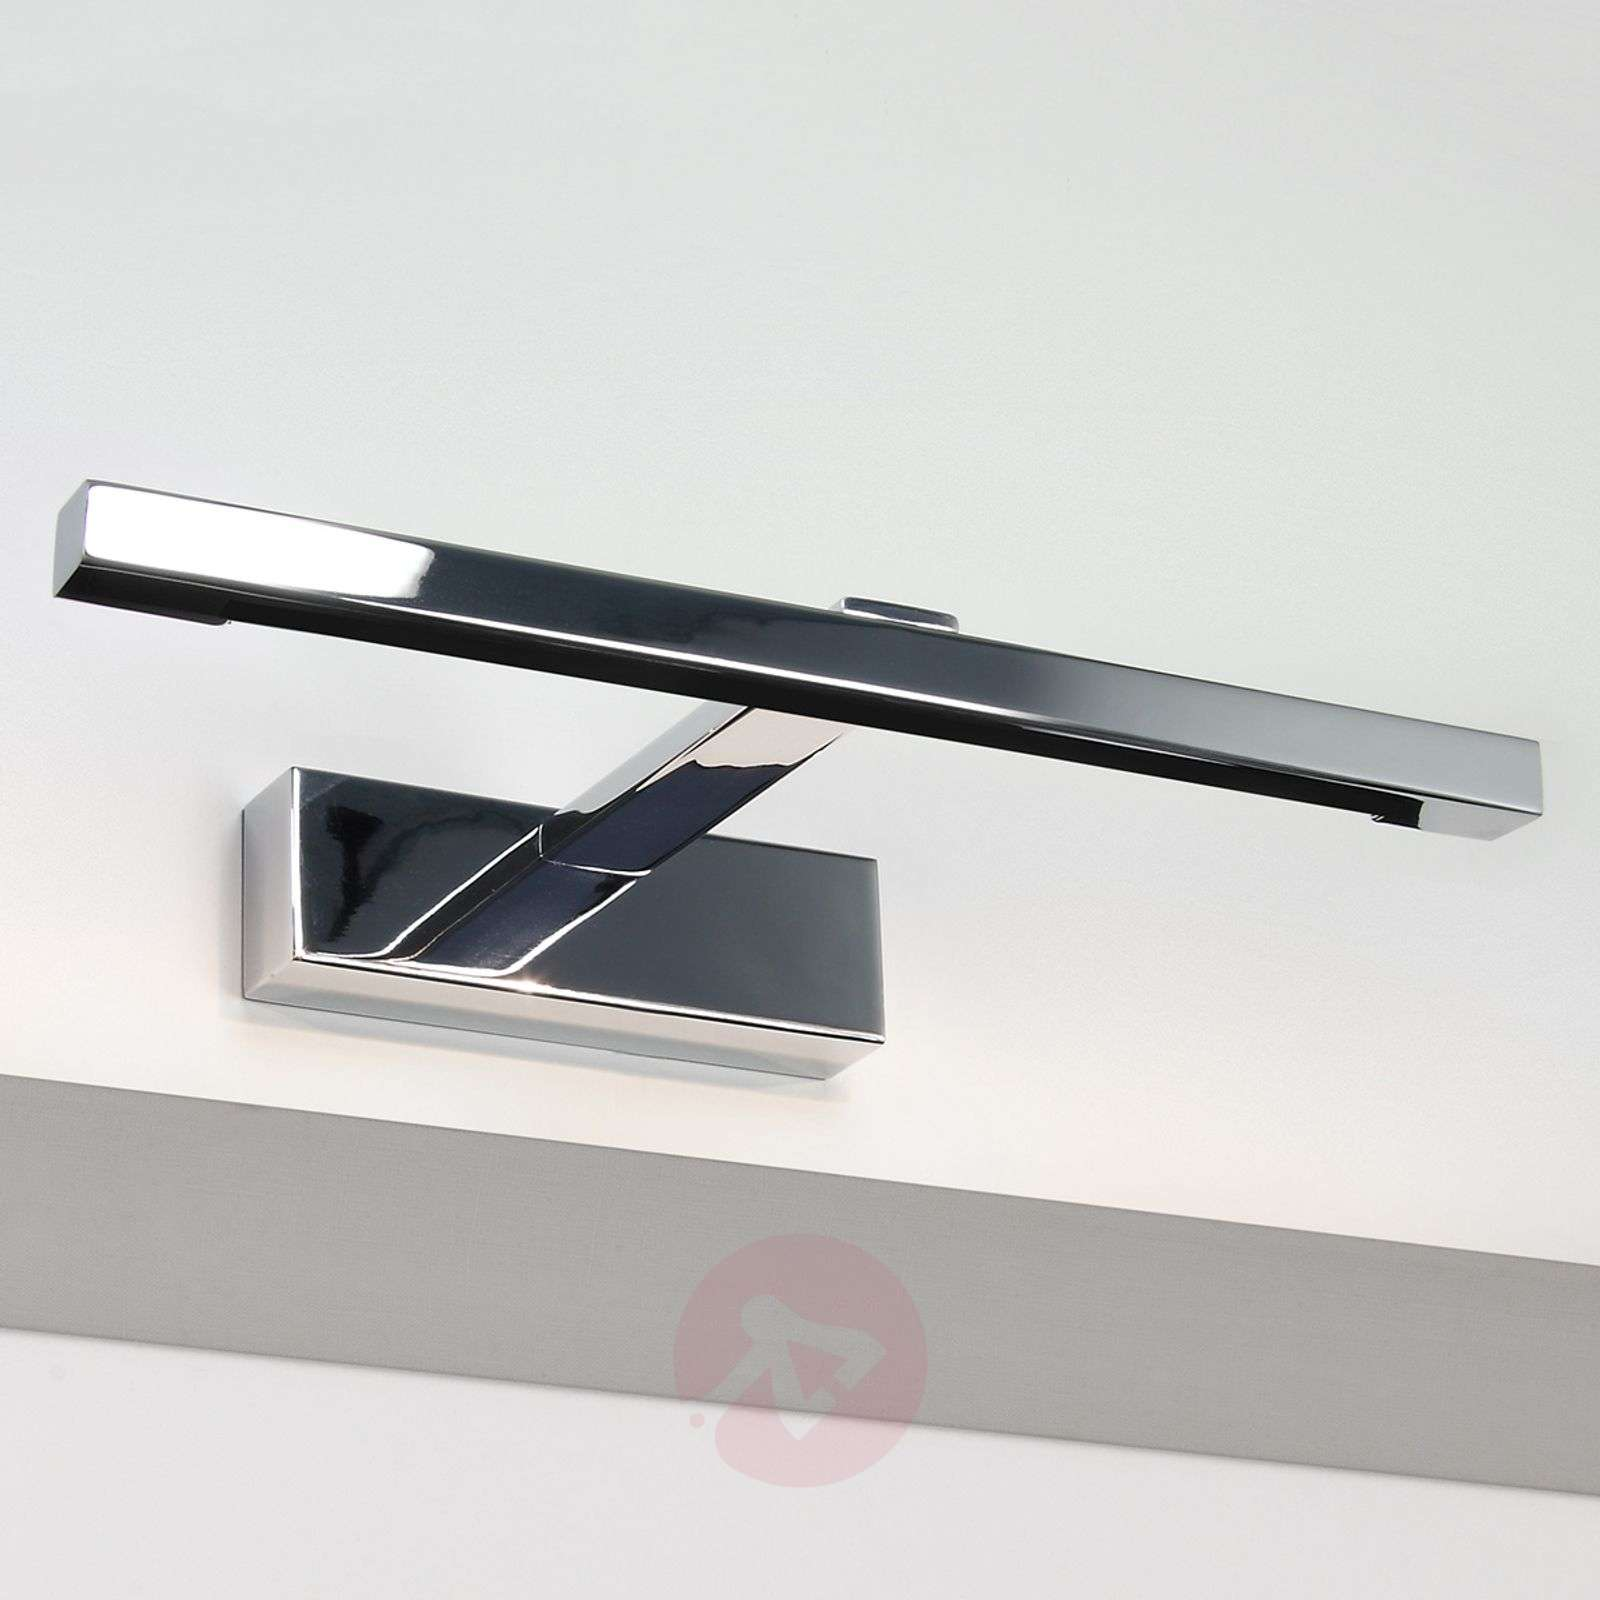 Teetoo 350 Picture Wall Light Low Voltage Chrome-1020246-02